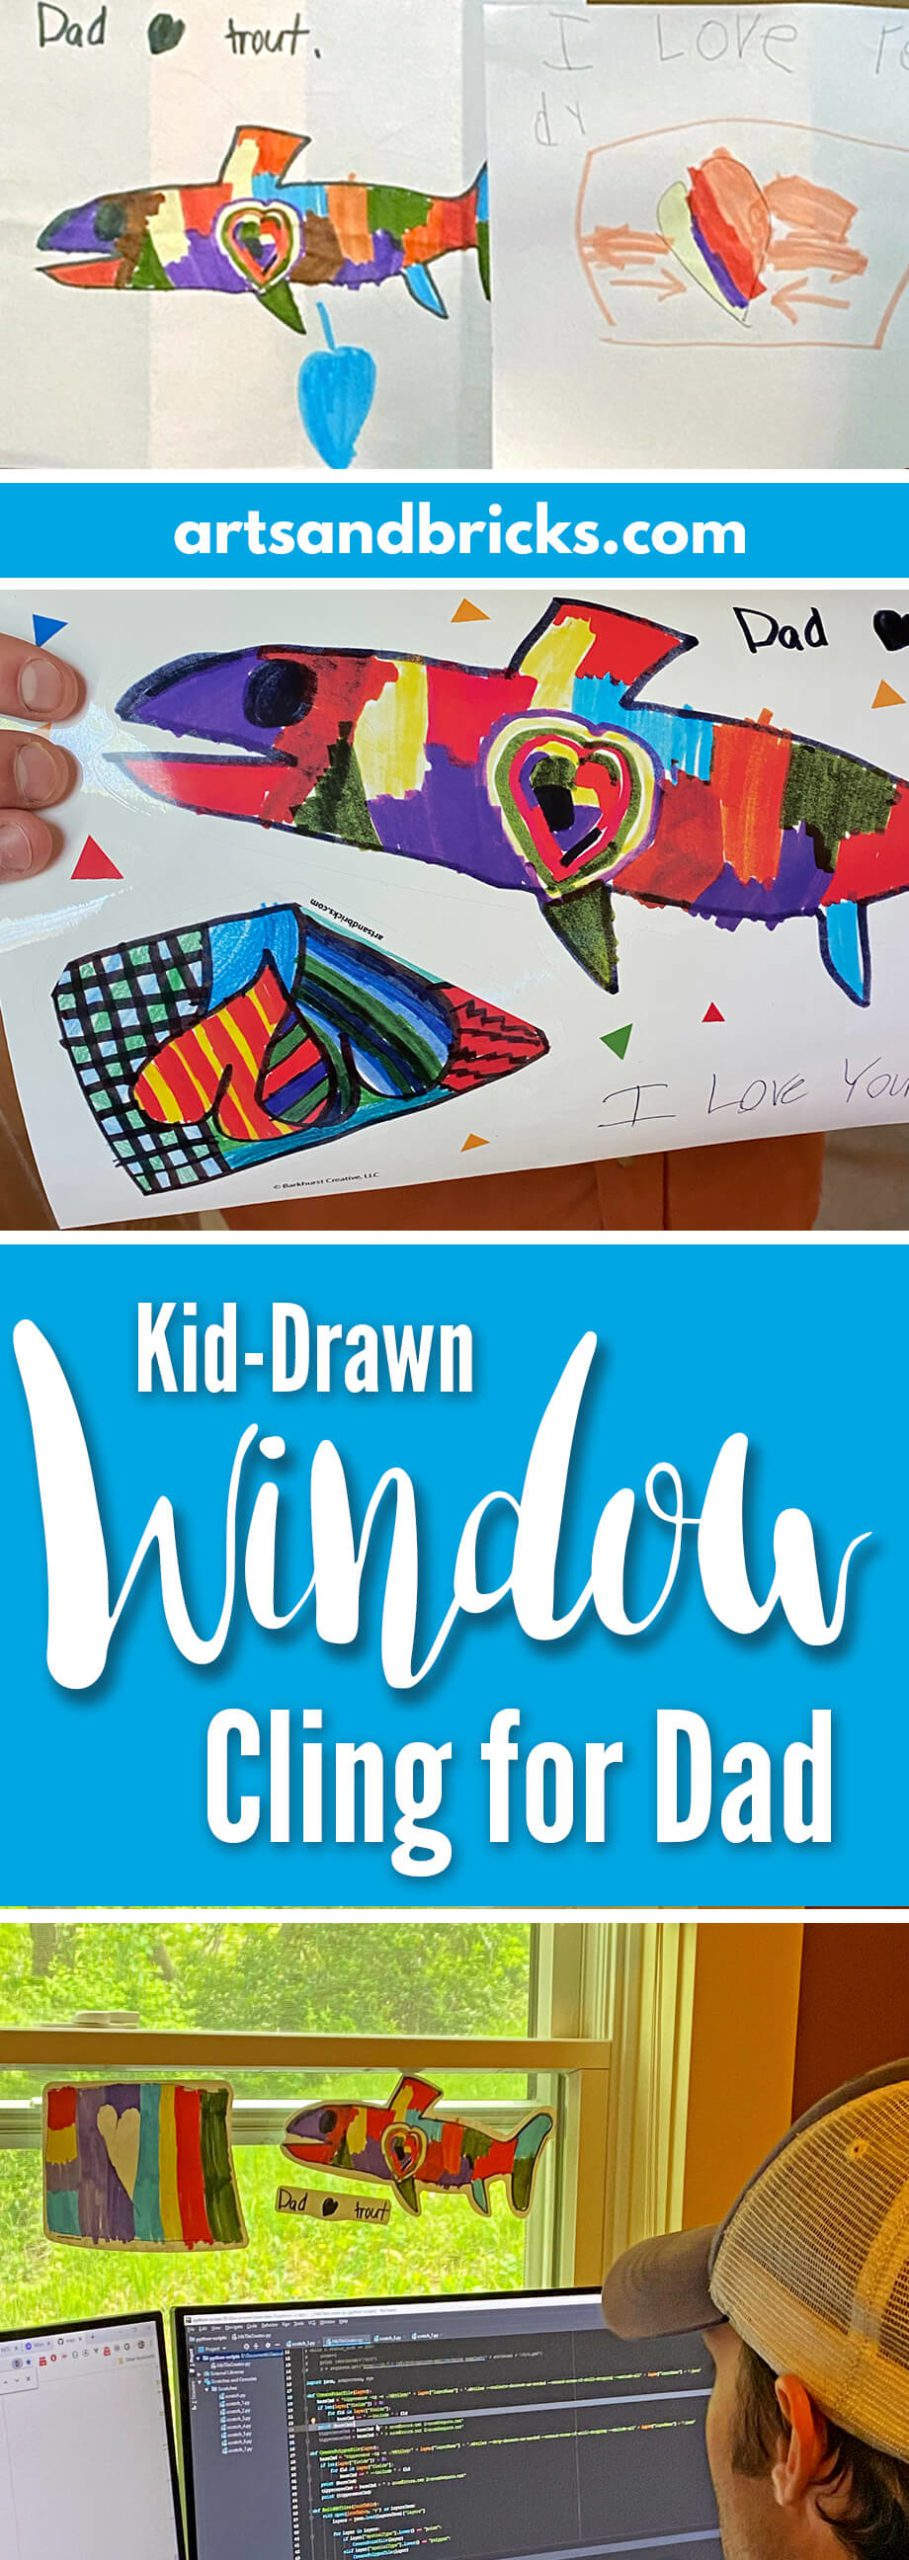 Looking for a unique gift for Dad? Turn your child's drawn images into window decals - perfect for windows and mirrors at the office or at home! #gift #fordad #fromkids #fathersday #kidsart